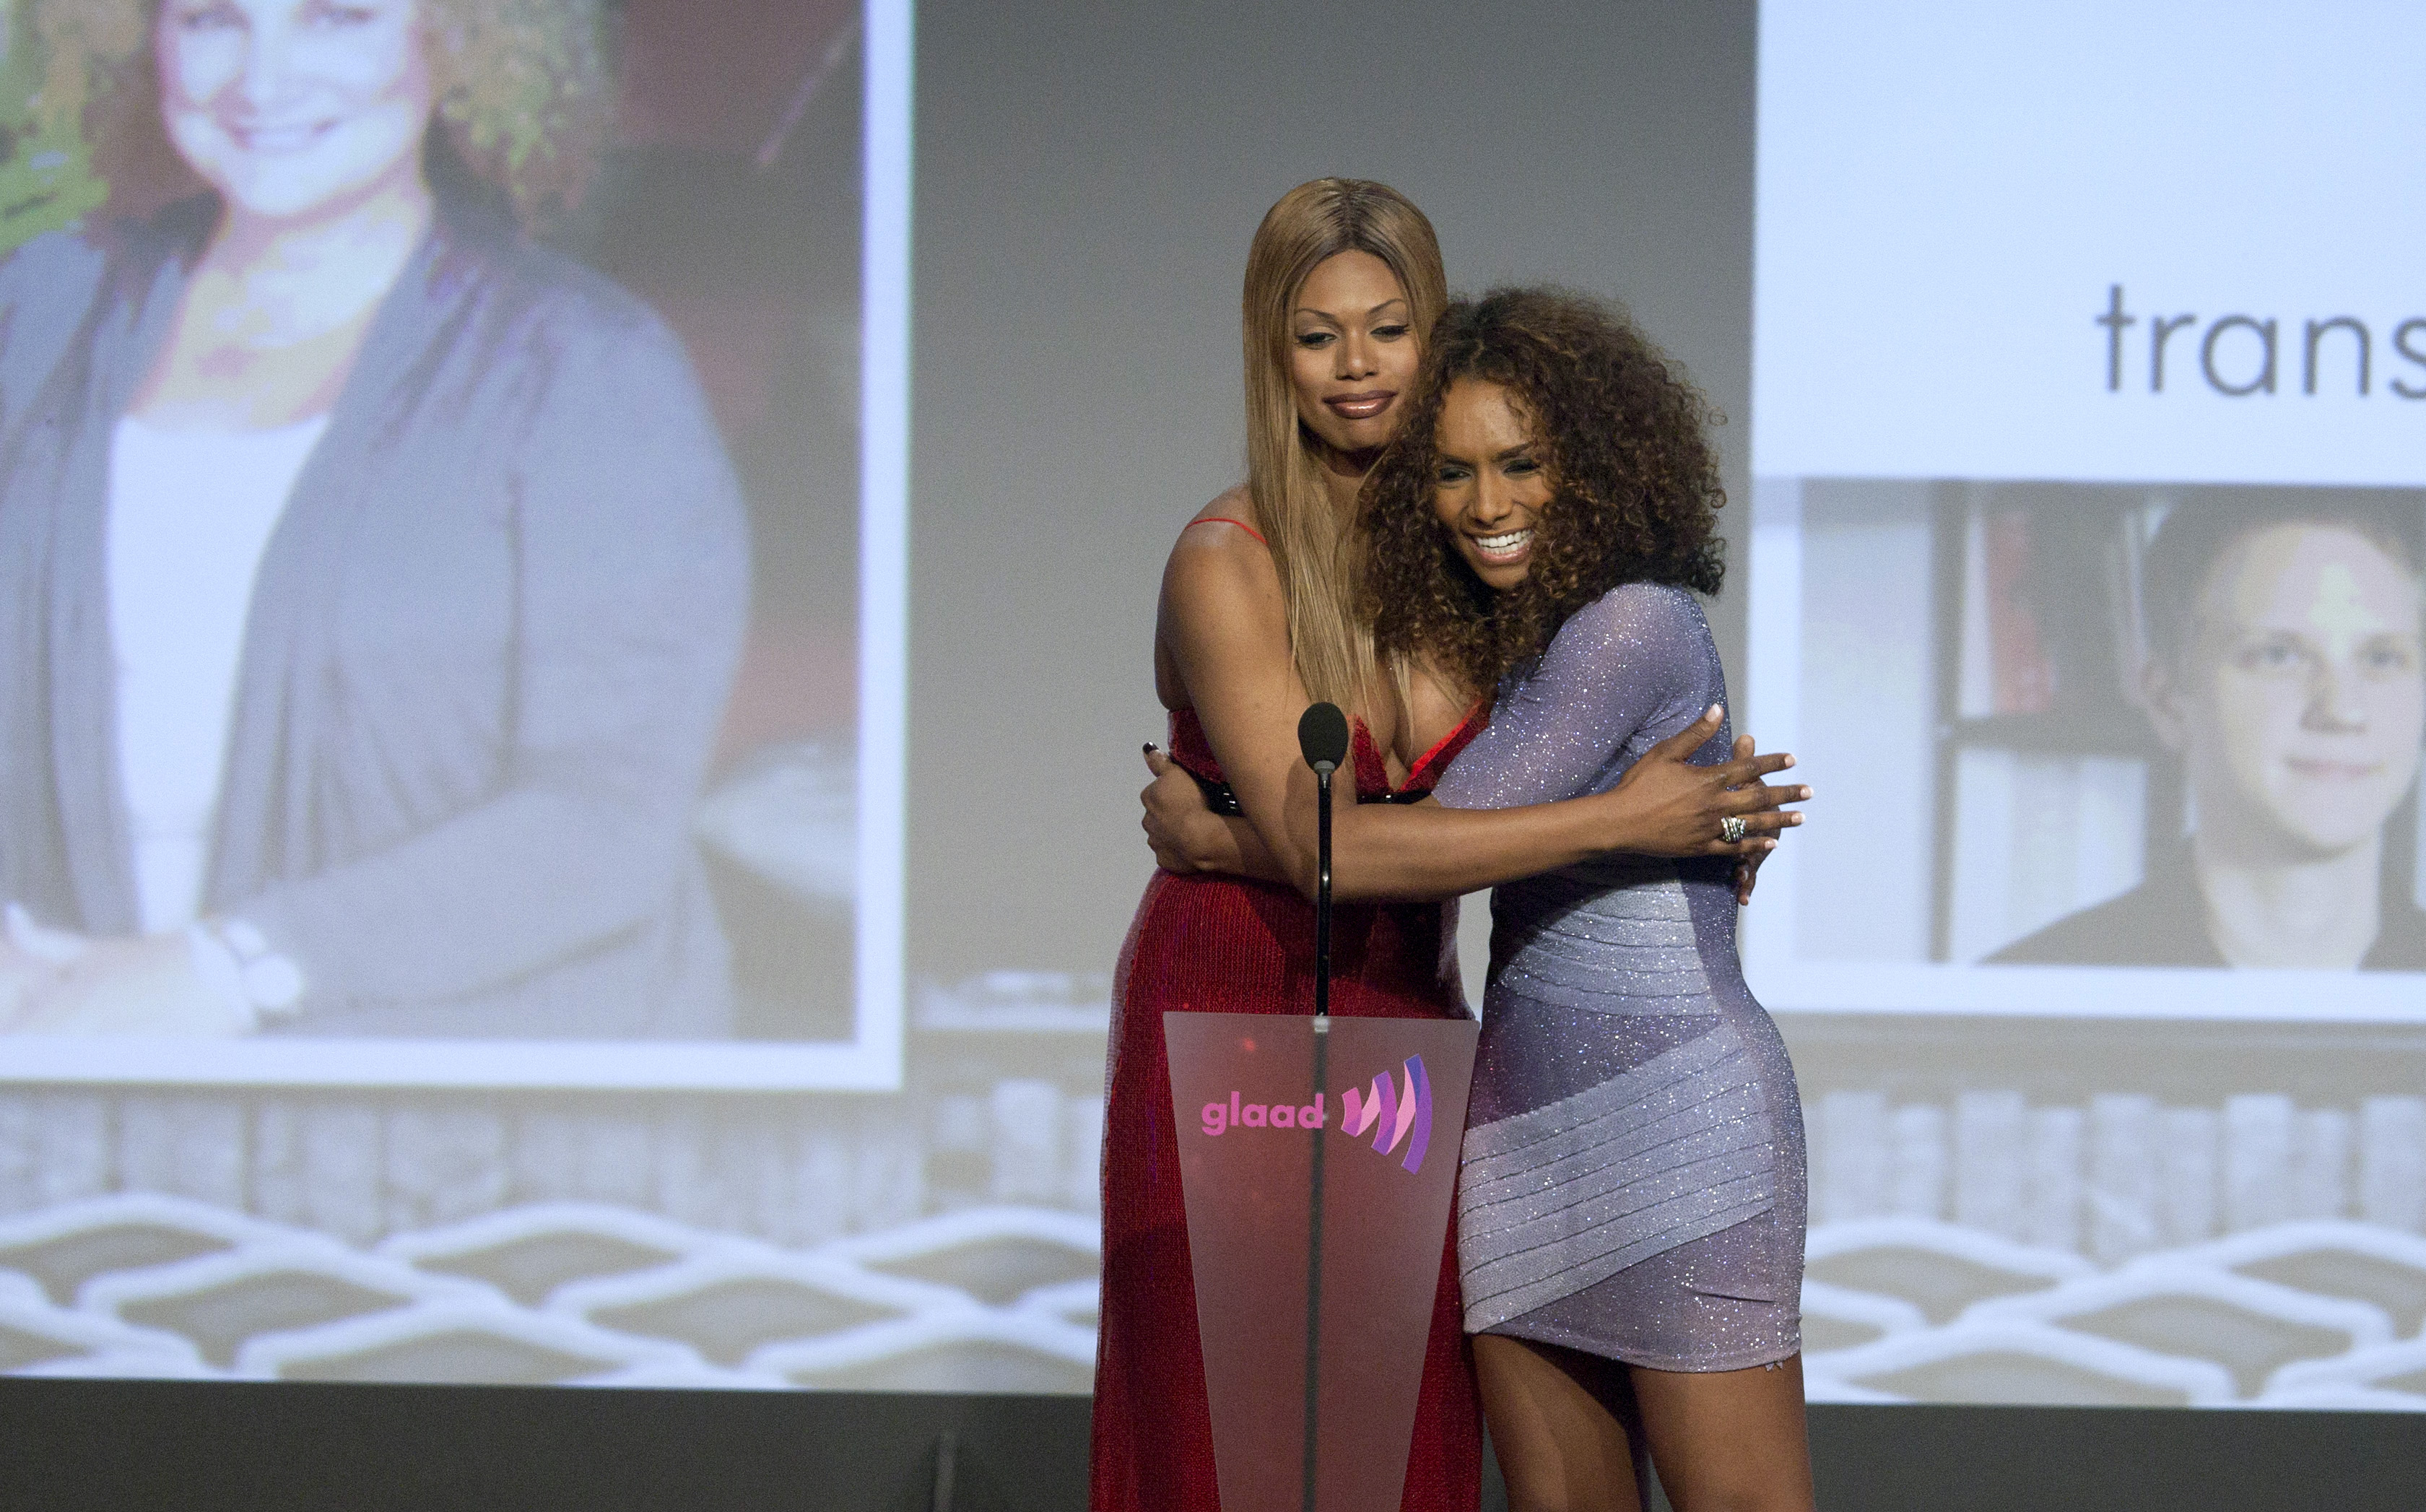 Actress Laverne Cox and writer Janet Mock attend the 23rd annual Gay and Lesbian Alliance Against Defamation (GLAAD) Media Awards in New York in 2012.   (Andrew Kelly/Reuters)